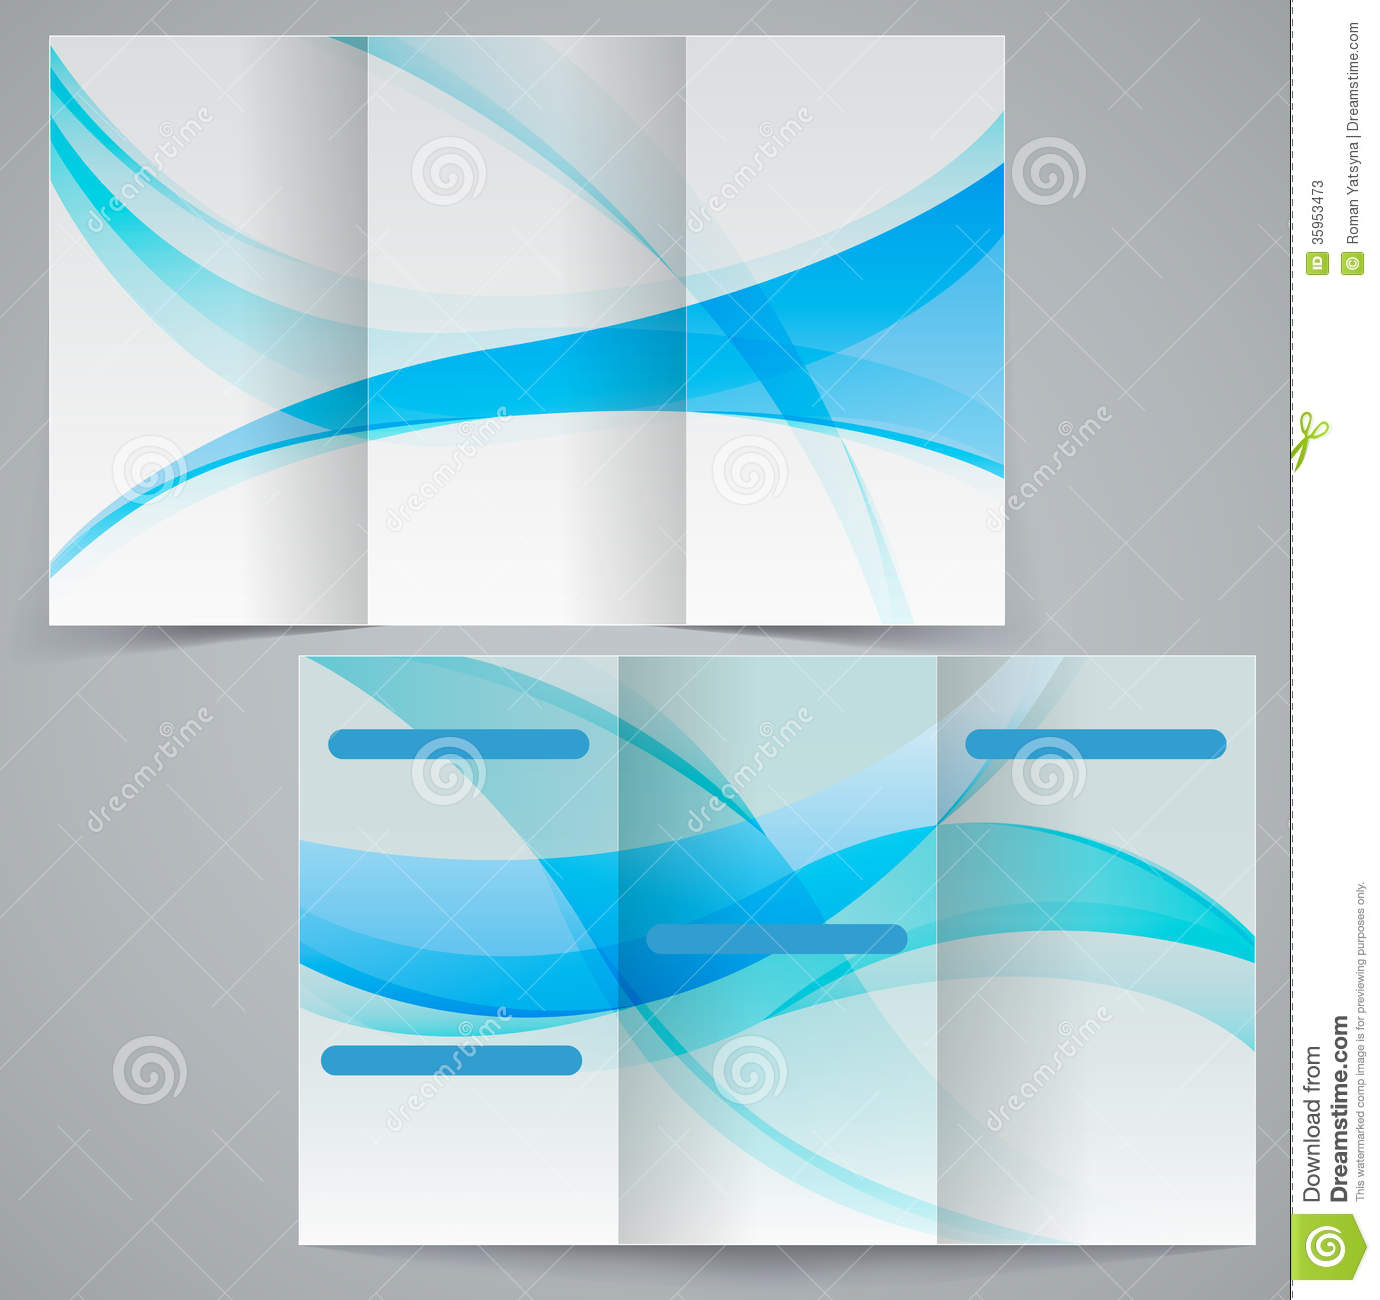 Tri fold business brochure template vector blue d stock for Brochures design templates